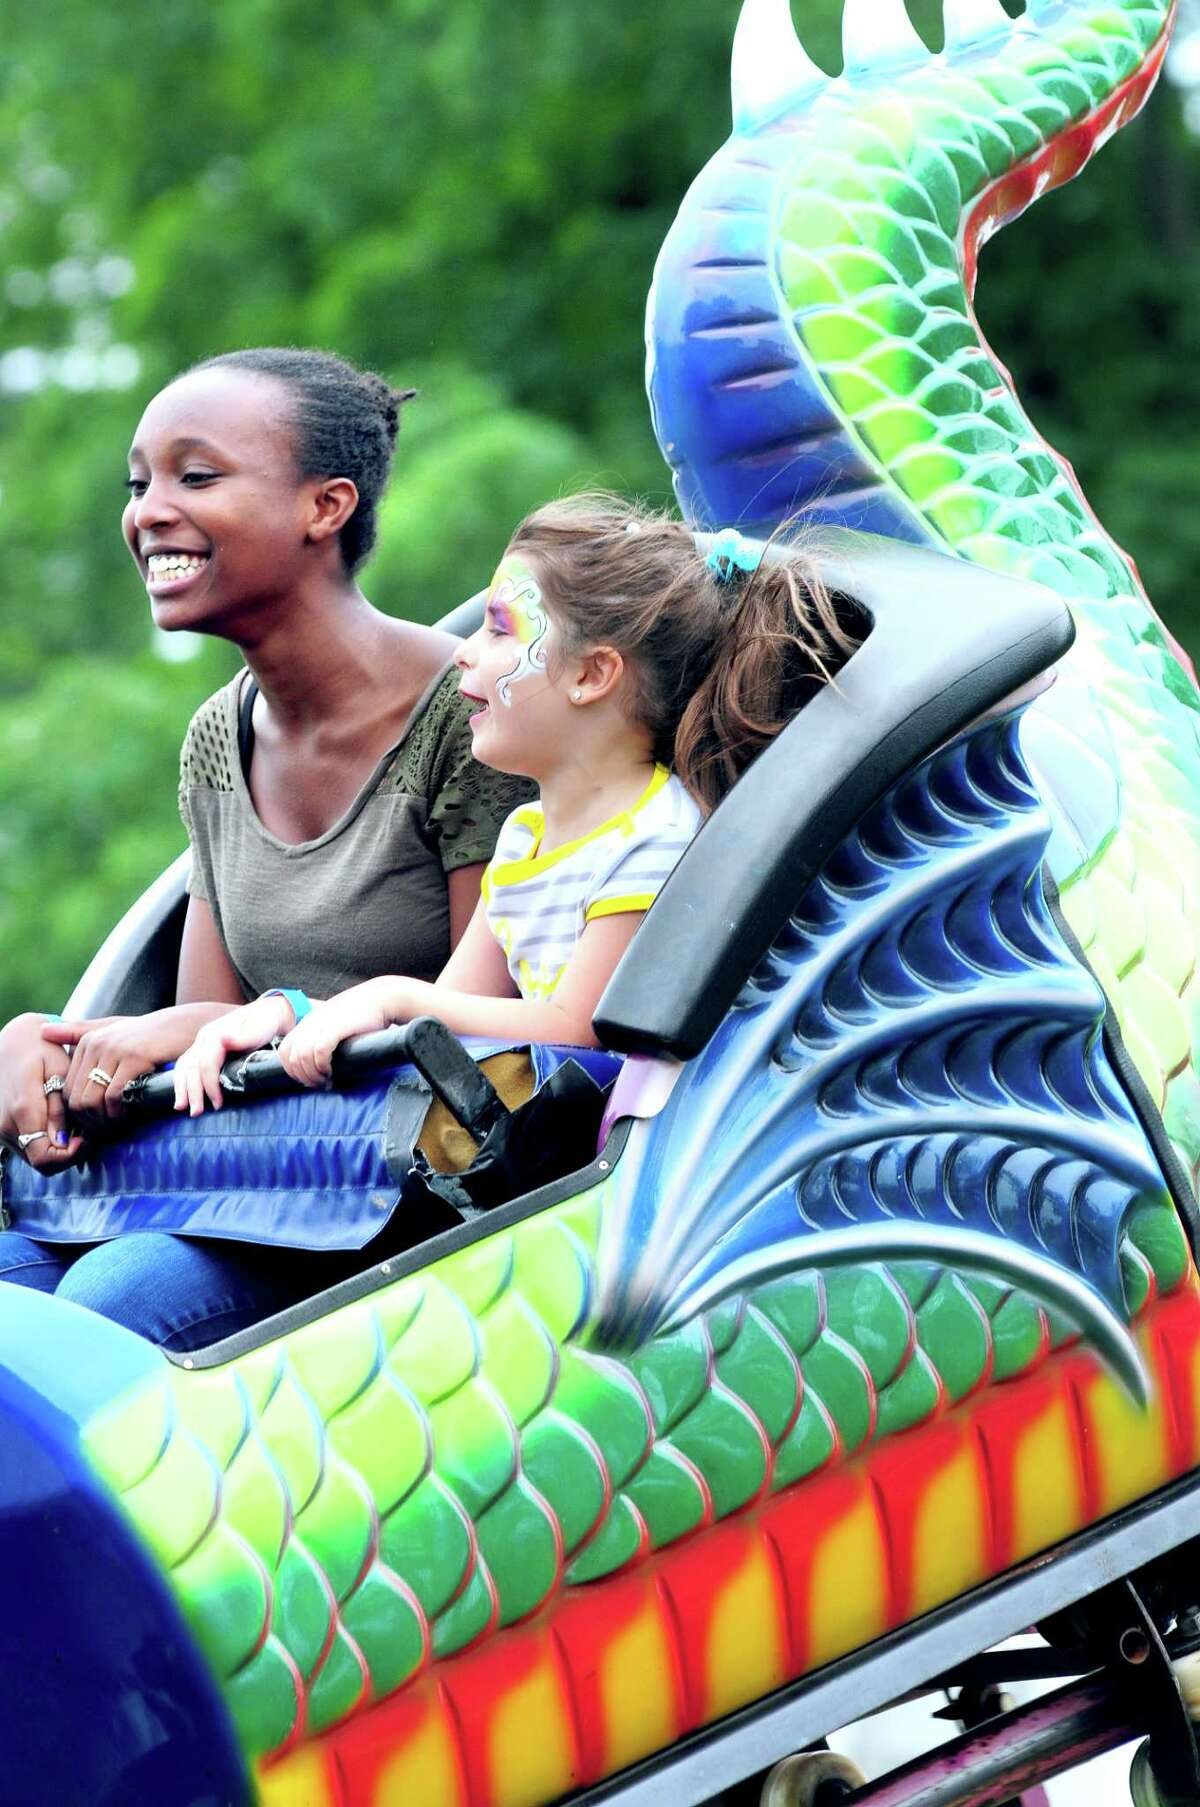 Riding the Dragon Wagon at the Savin Rock Festival in West Haven in 2013.